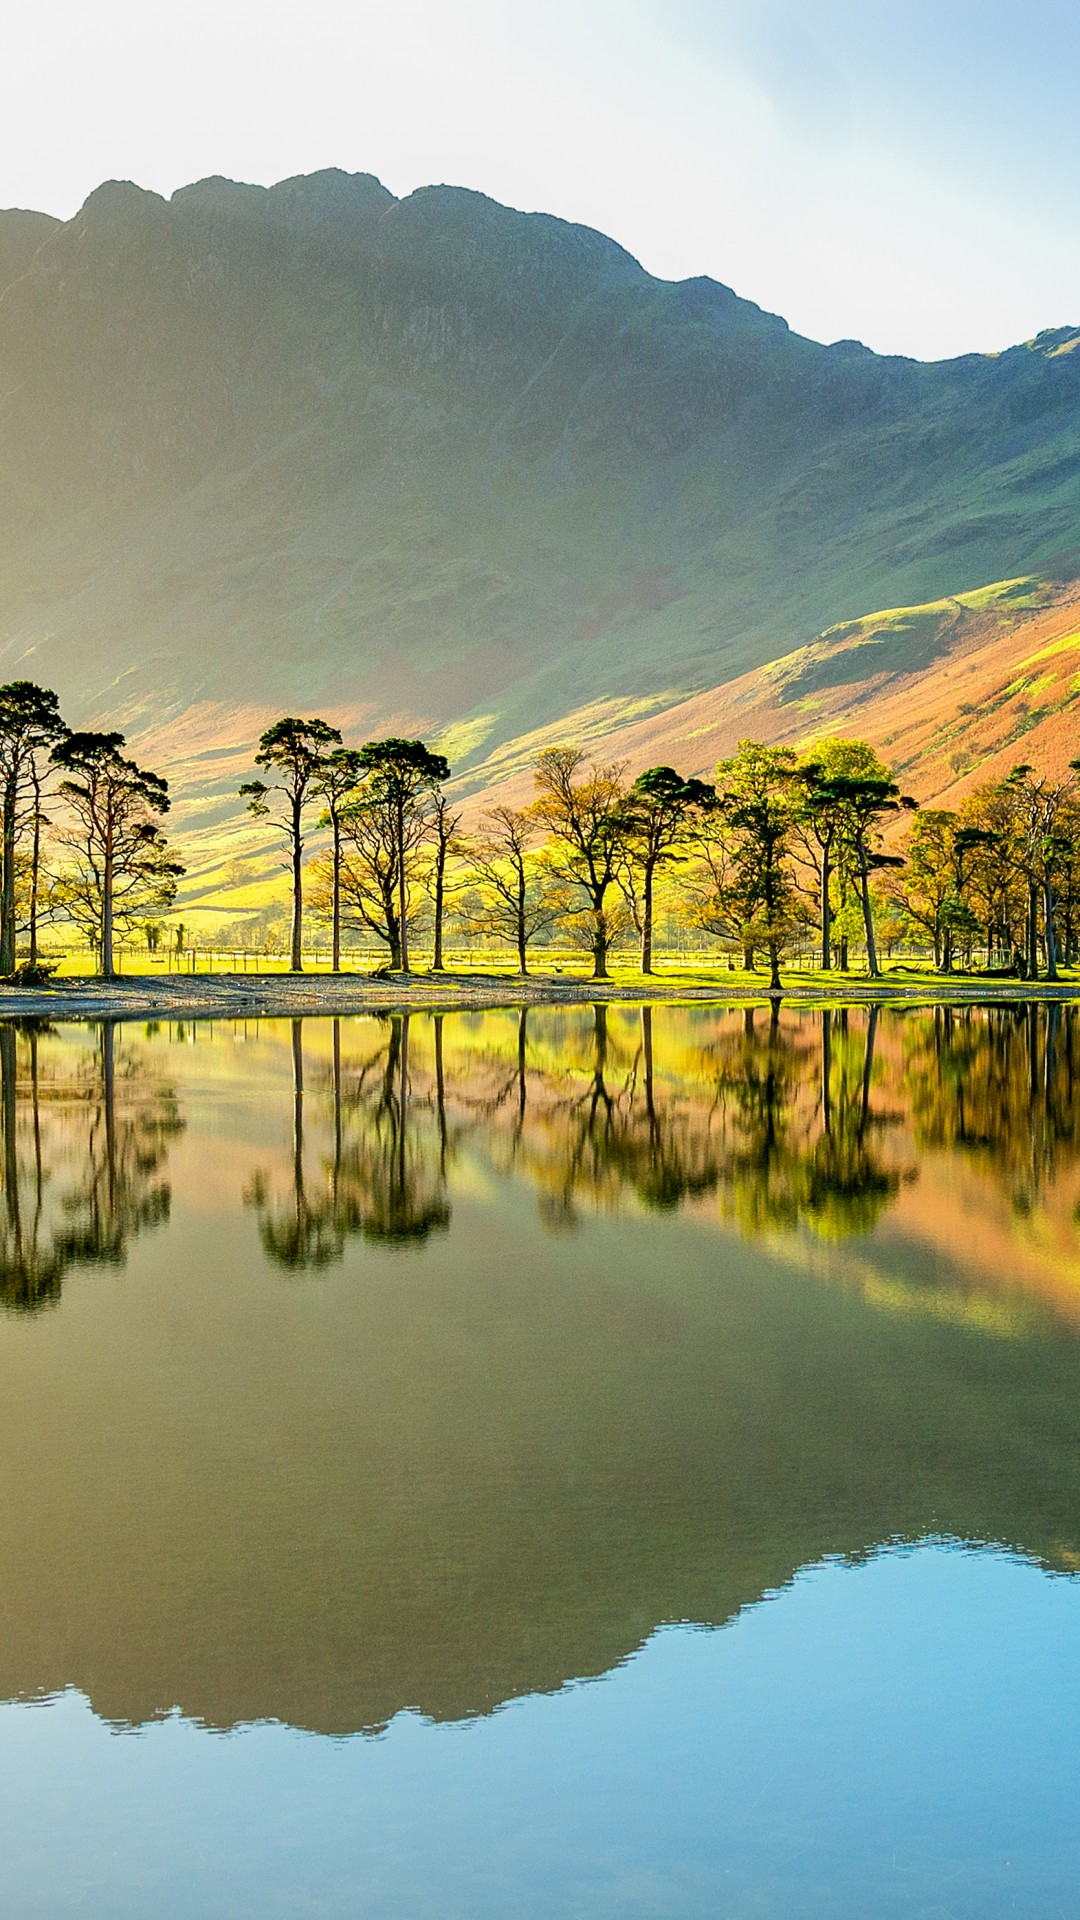 lake buttermere park national england mountains cumbria 4k wallpapers district nature bing microsoft wallpapershome water